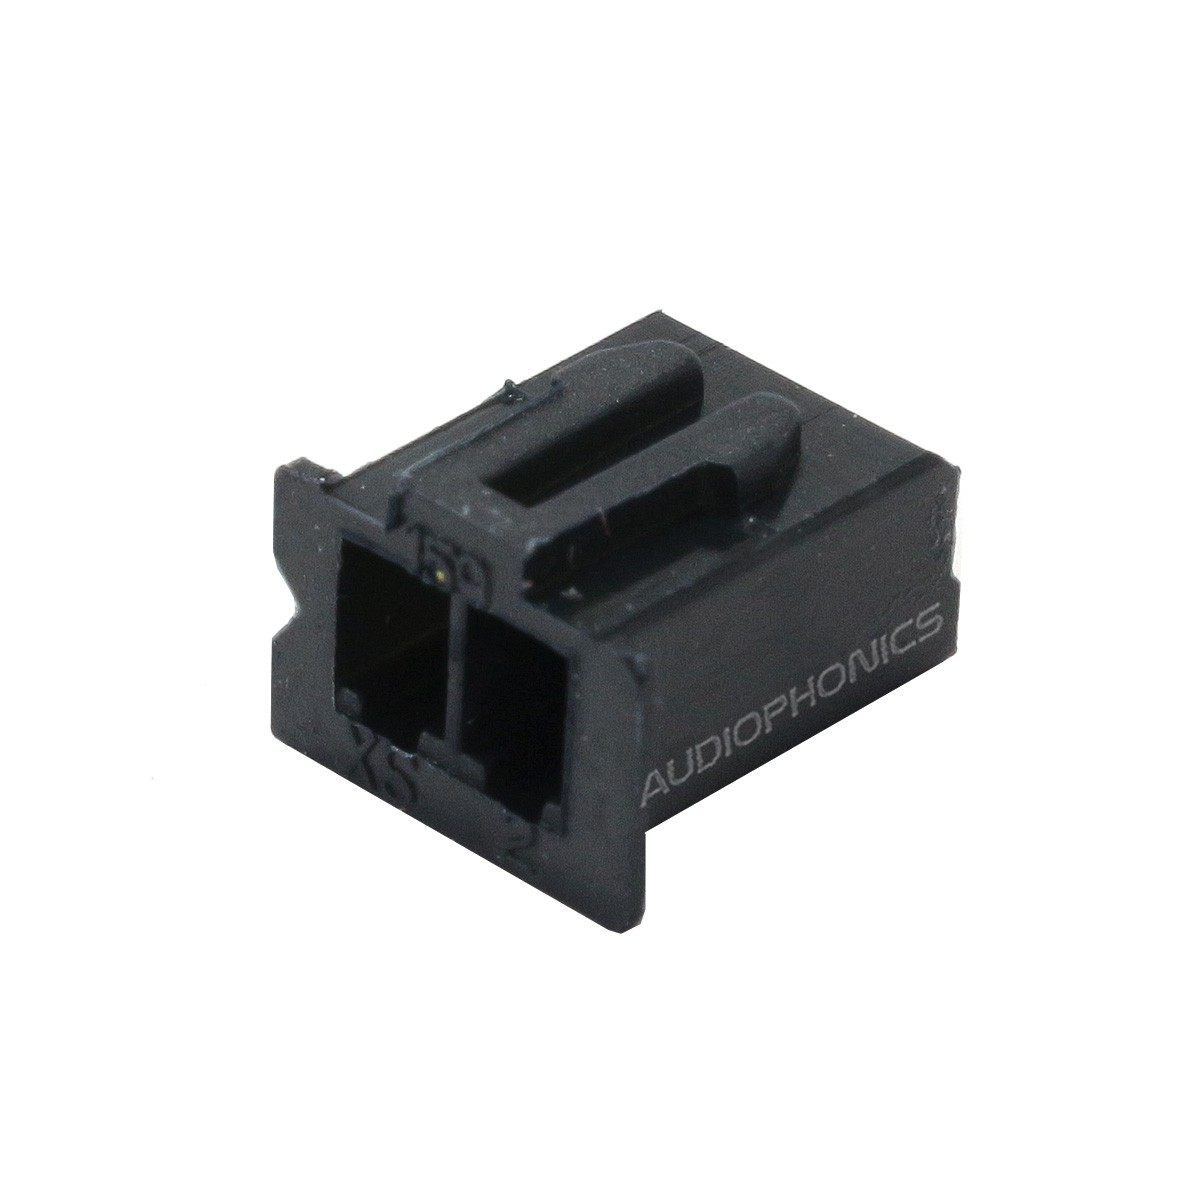 XH 2.54mm Female Casing 2 Channels Black (Unit)